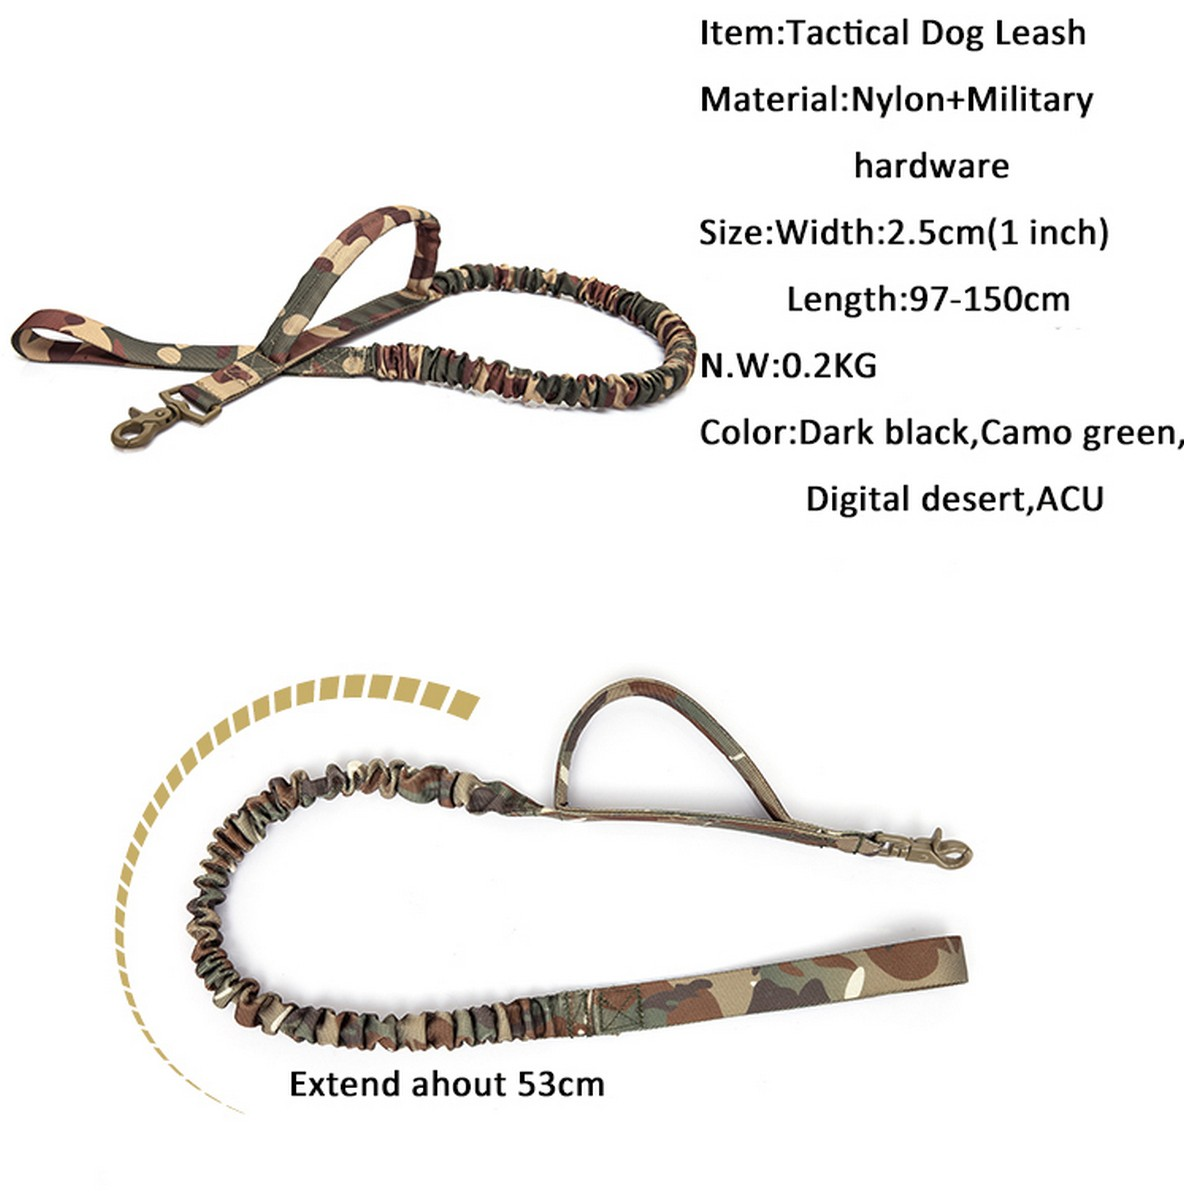 Tactical-Scorpion-Gear-Dog-Leash-Lead-Canine-K9-Military-Training-Vest-Harness thumbnail 7